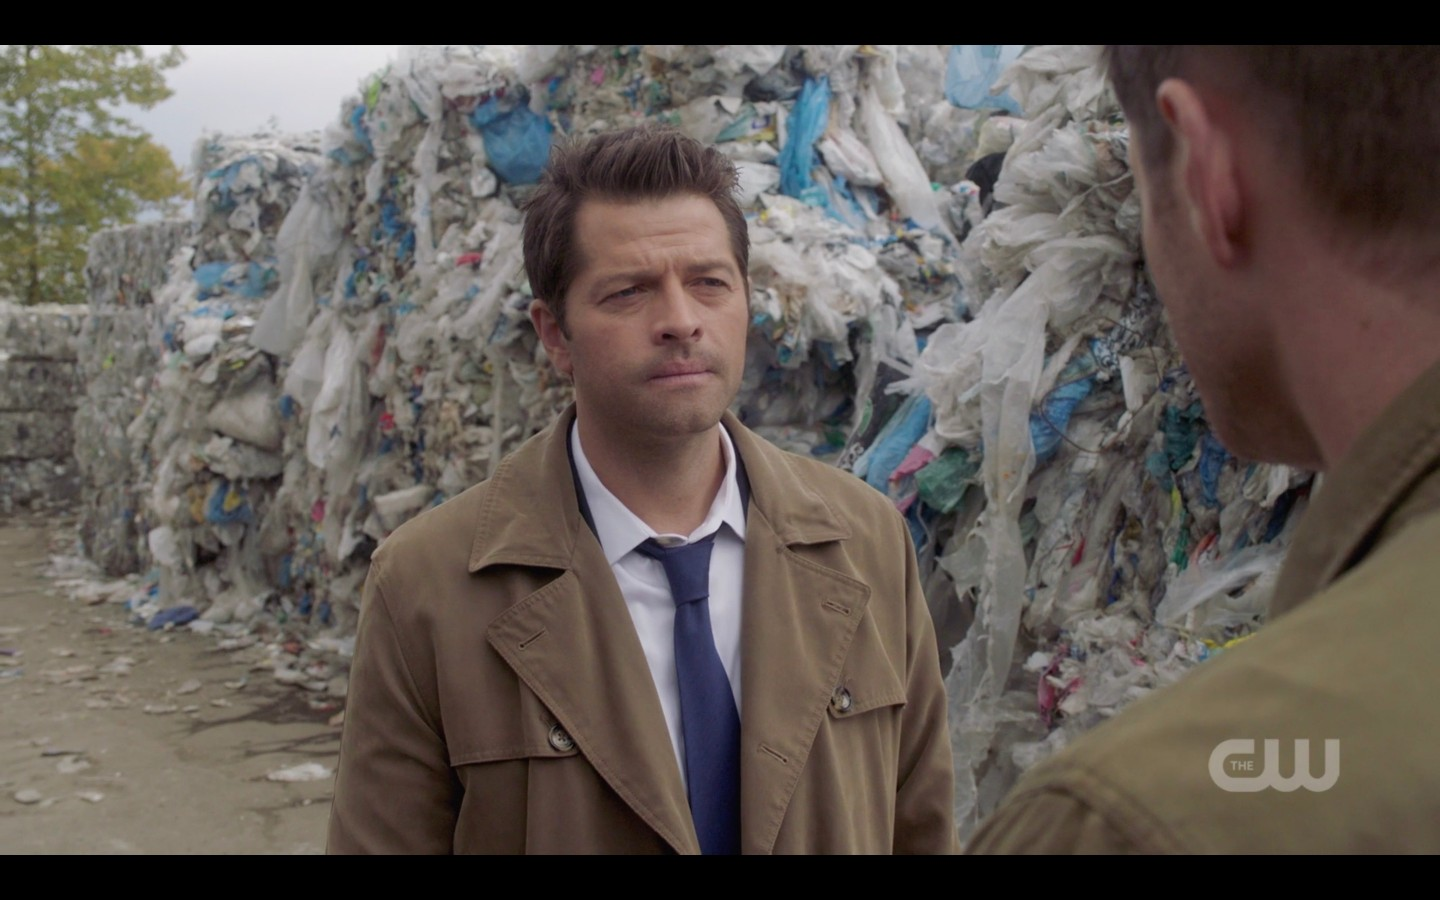 spn 1409 castiel with dean winchester at car dump